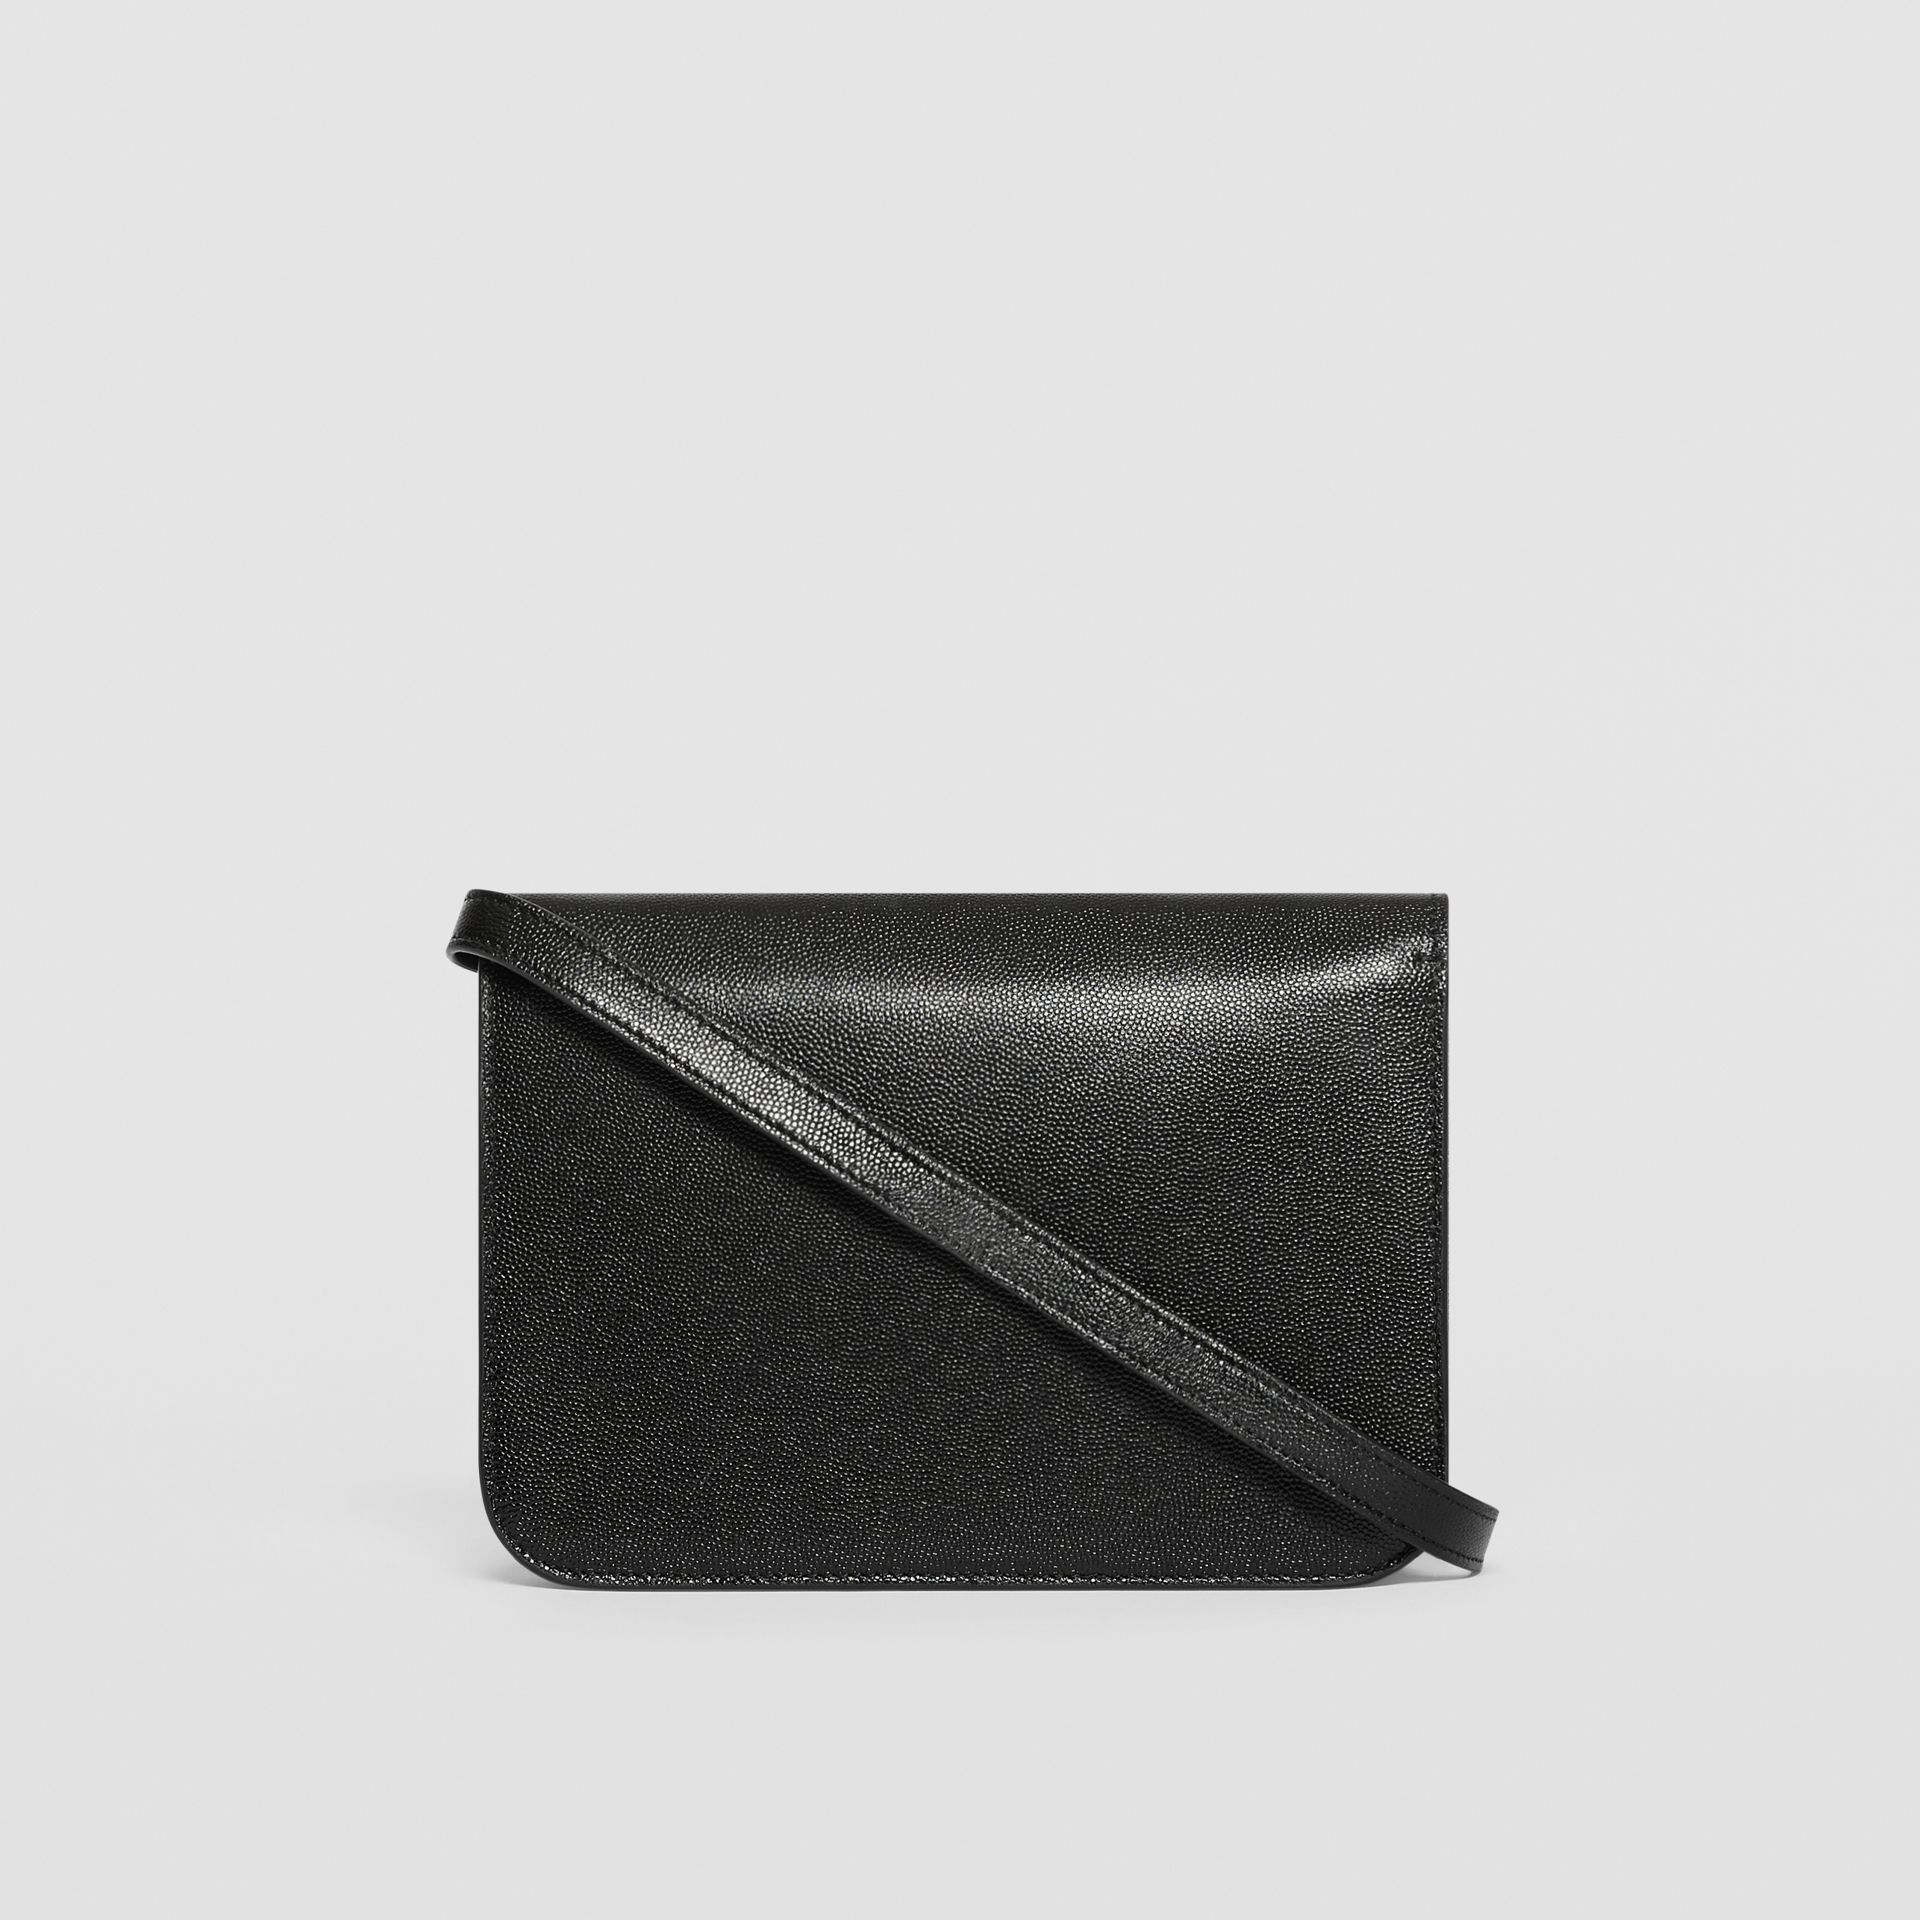 Small Grainy Leather TB Bag in Black - Women | Burberry Australia - gallery image 7